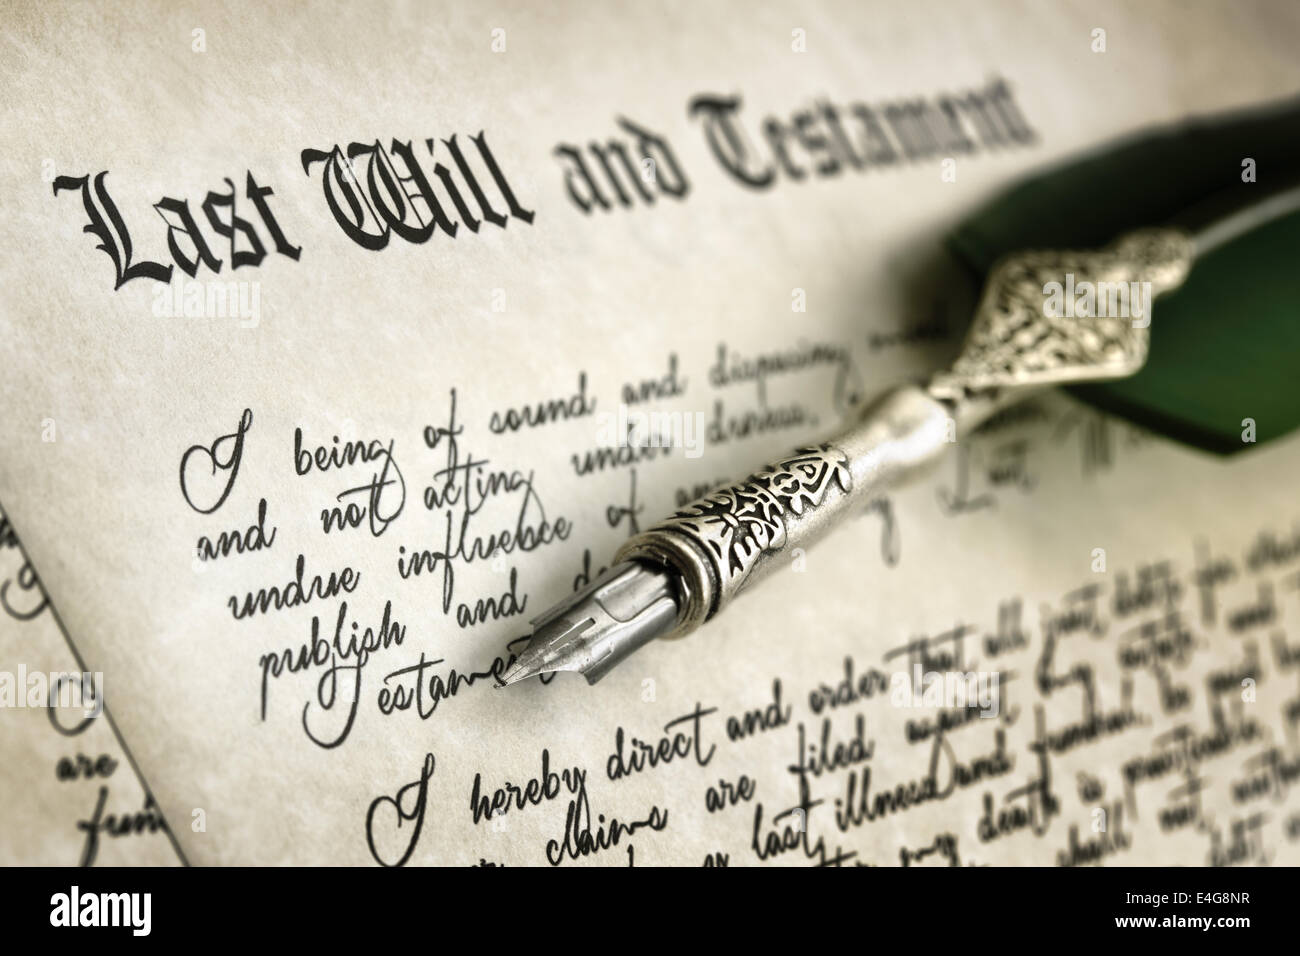 Signing Last Will and Testament - Stock Image